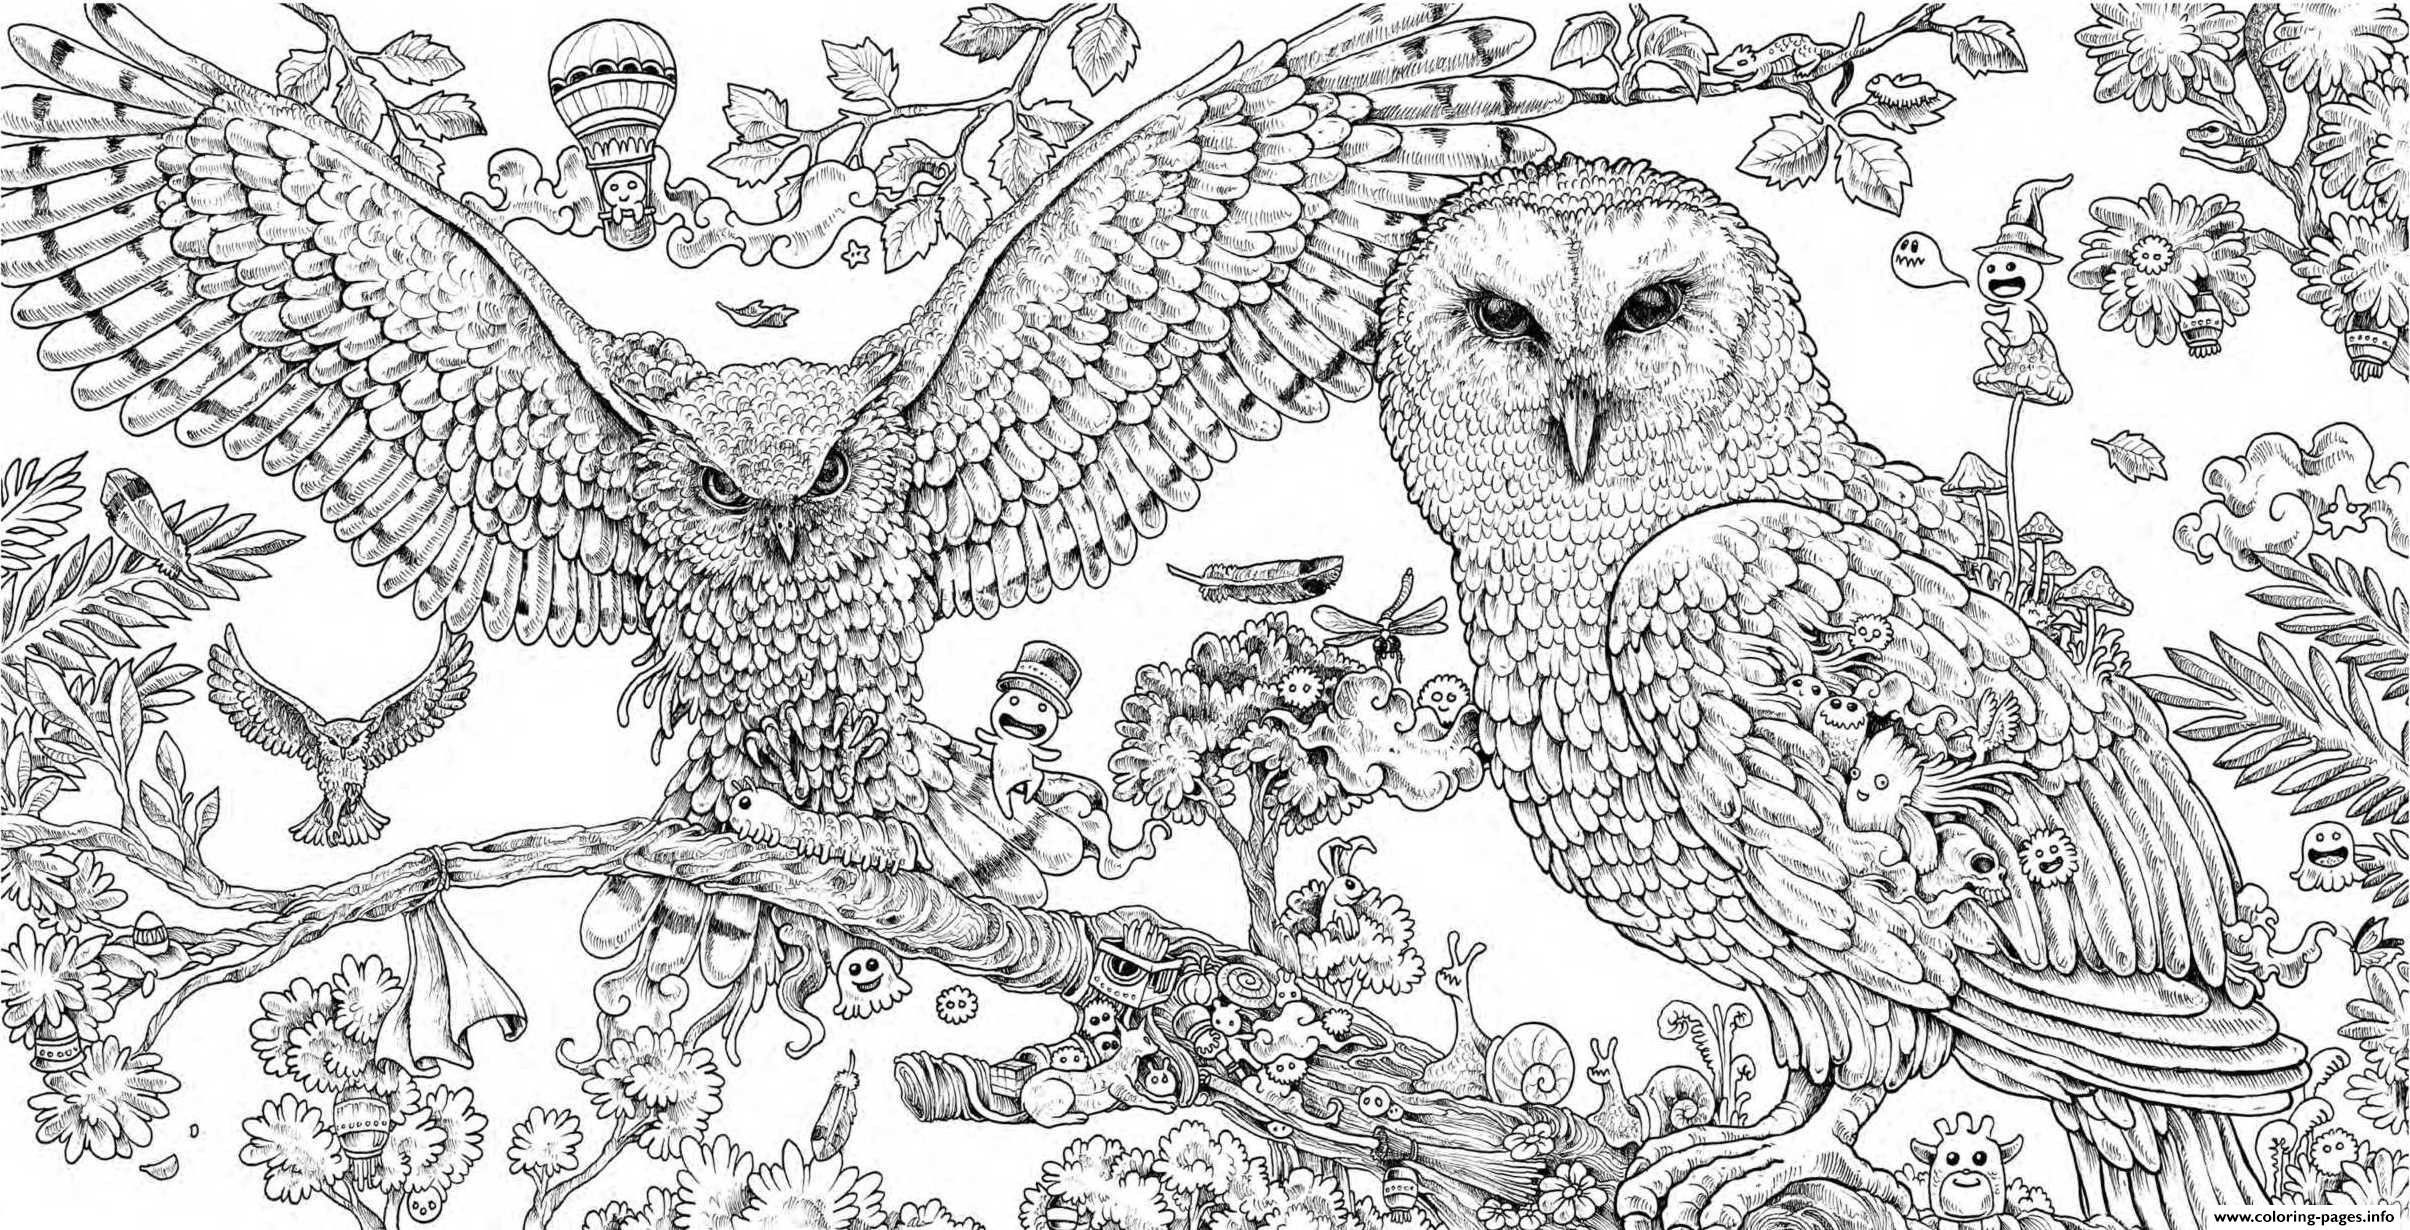 Coloring Pages Of Animals Hard From The Thousand Images On The Internet Regarding Colorin In 2020 Animal Coloring Books Zoo Animal Coloring Pages Bird Coloring Pages